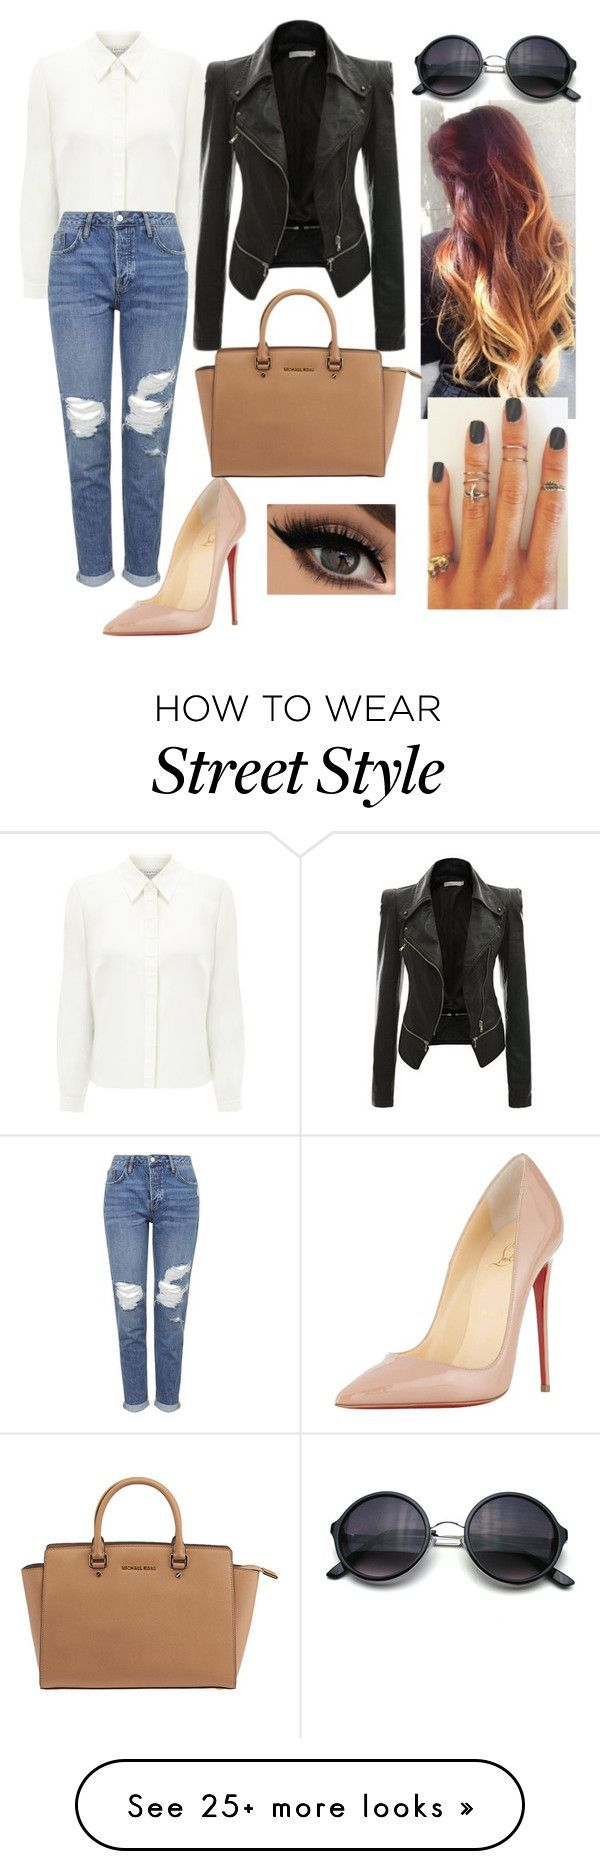 """Street style"" by teenfashionicon2 on Polyvore featuring Eastex, Topshop, Christian Louboutin, Michael Kors, Arme De L'Amour, women's clothing, women's fashion, women, female and woman"